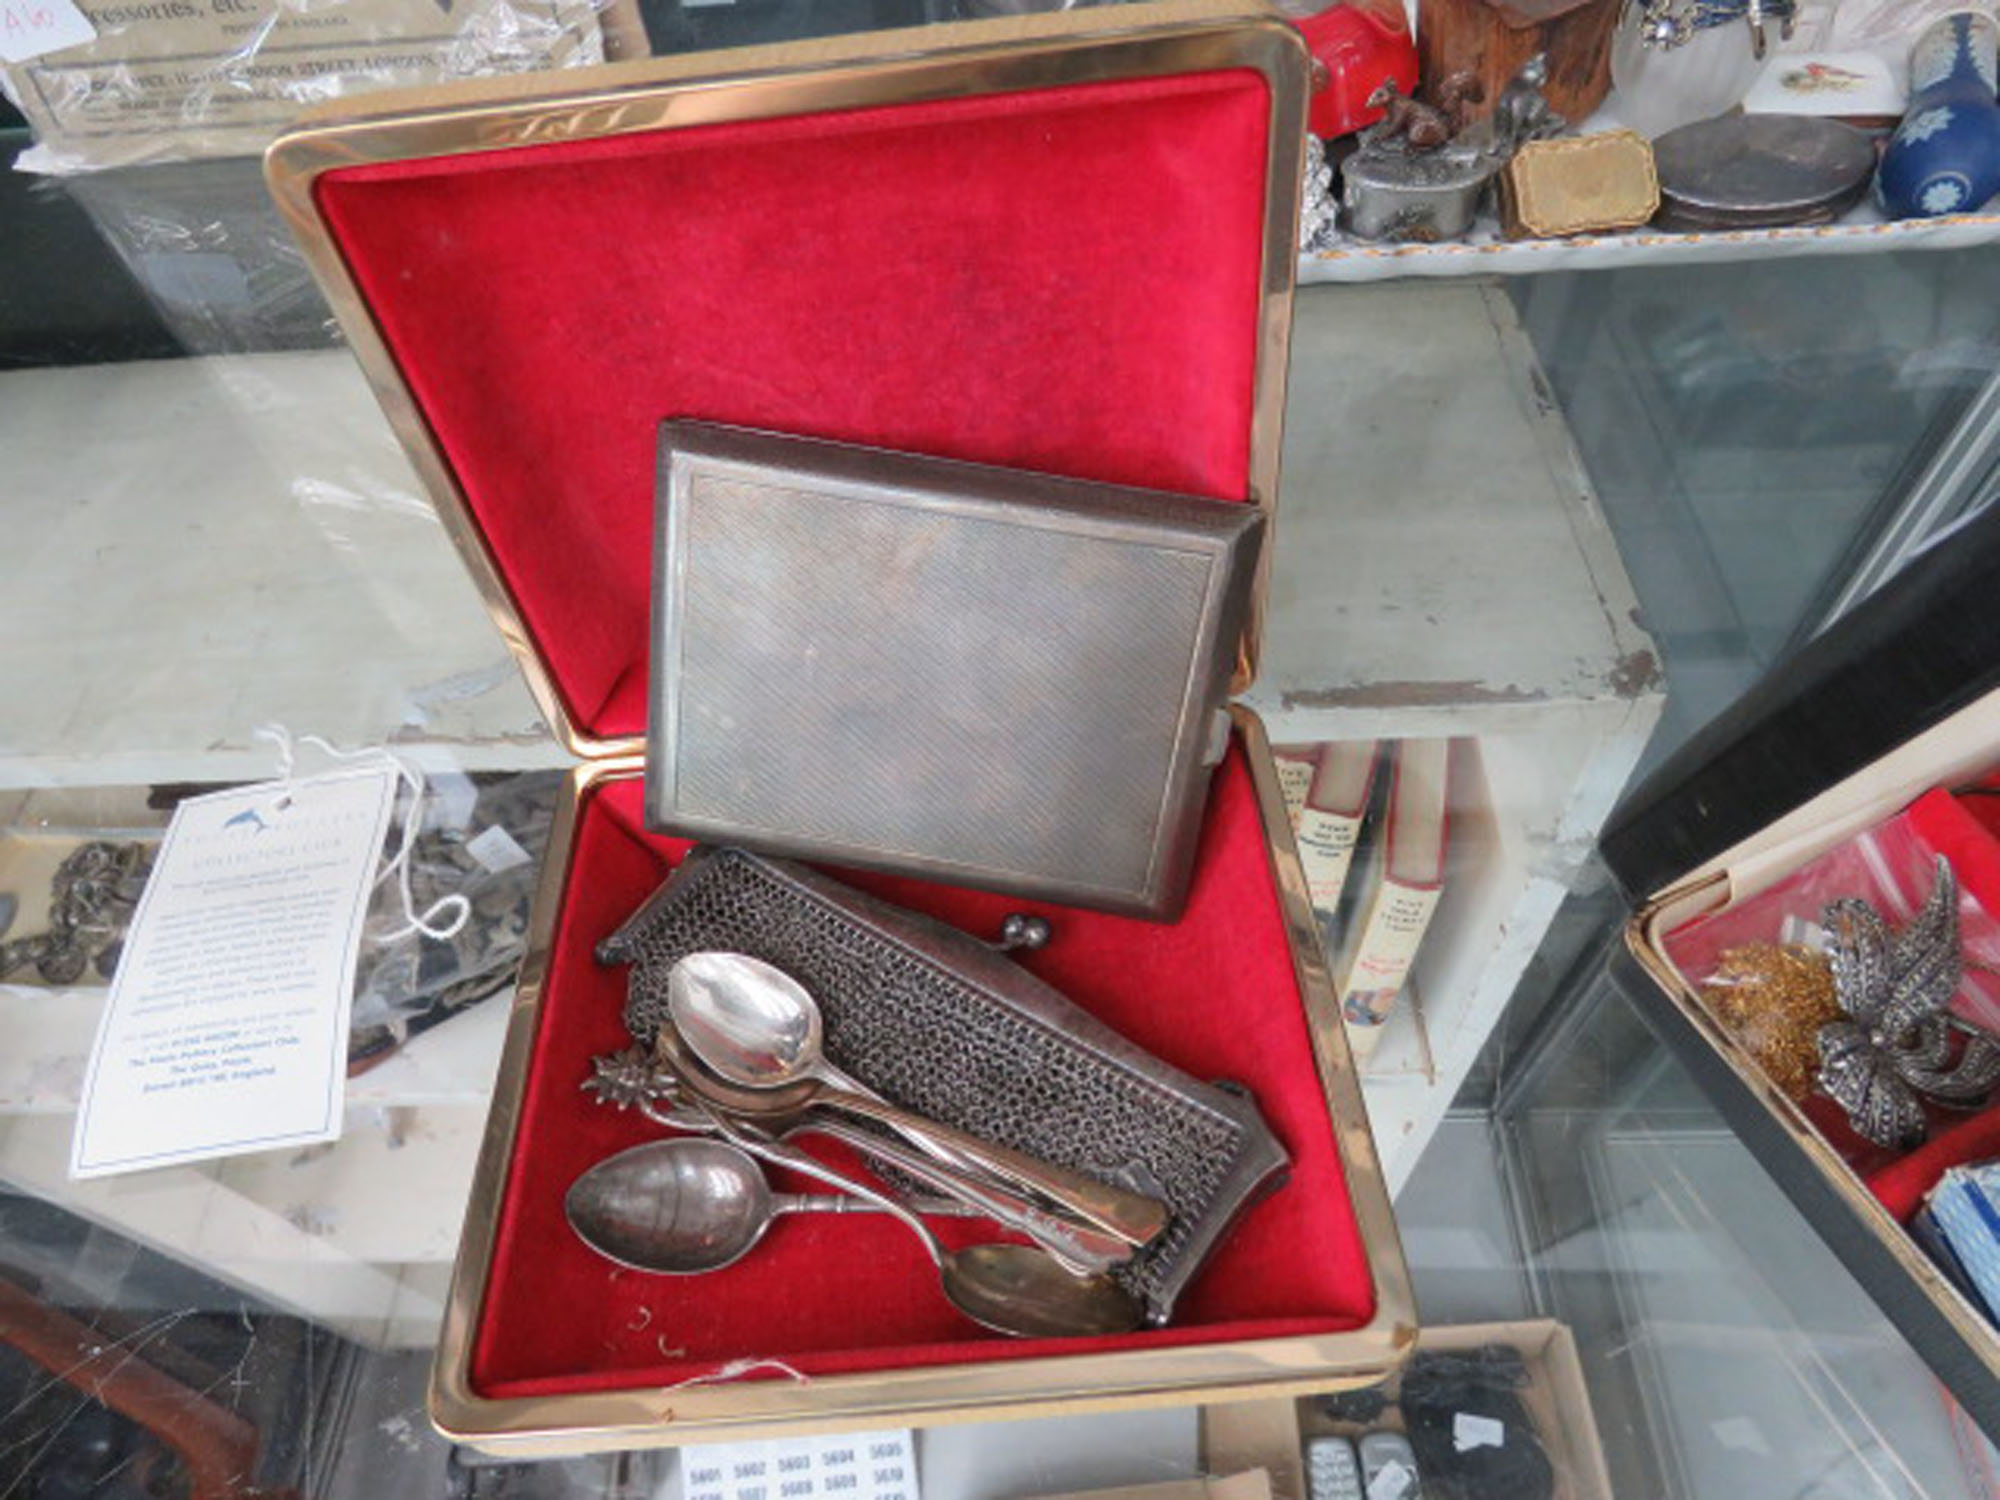 (2) Box containing silver cigarette case, loose teaspoons and mesh purse